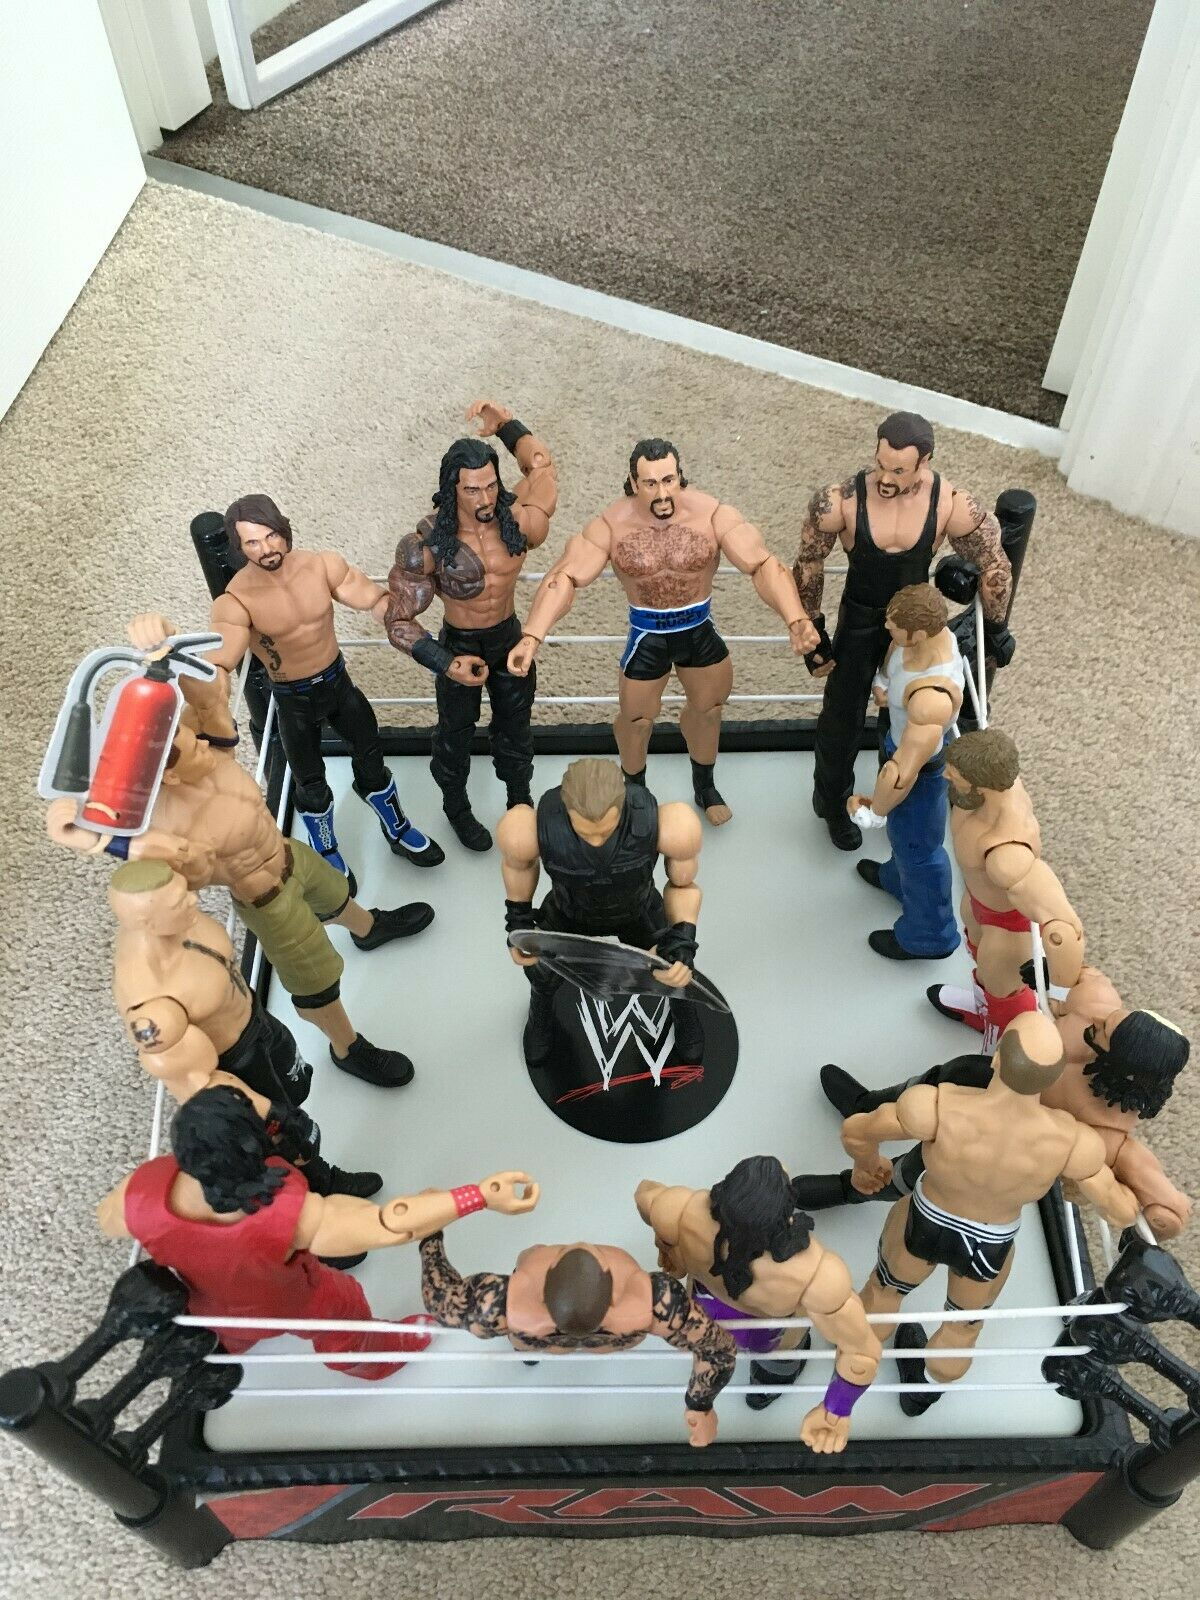 WWE Action Figures (x14) Bundle with RAW Wrestling Ring and 3 Championship belts